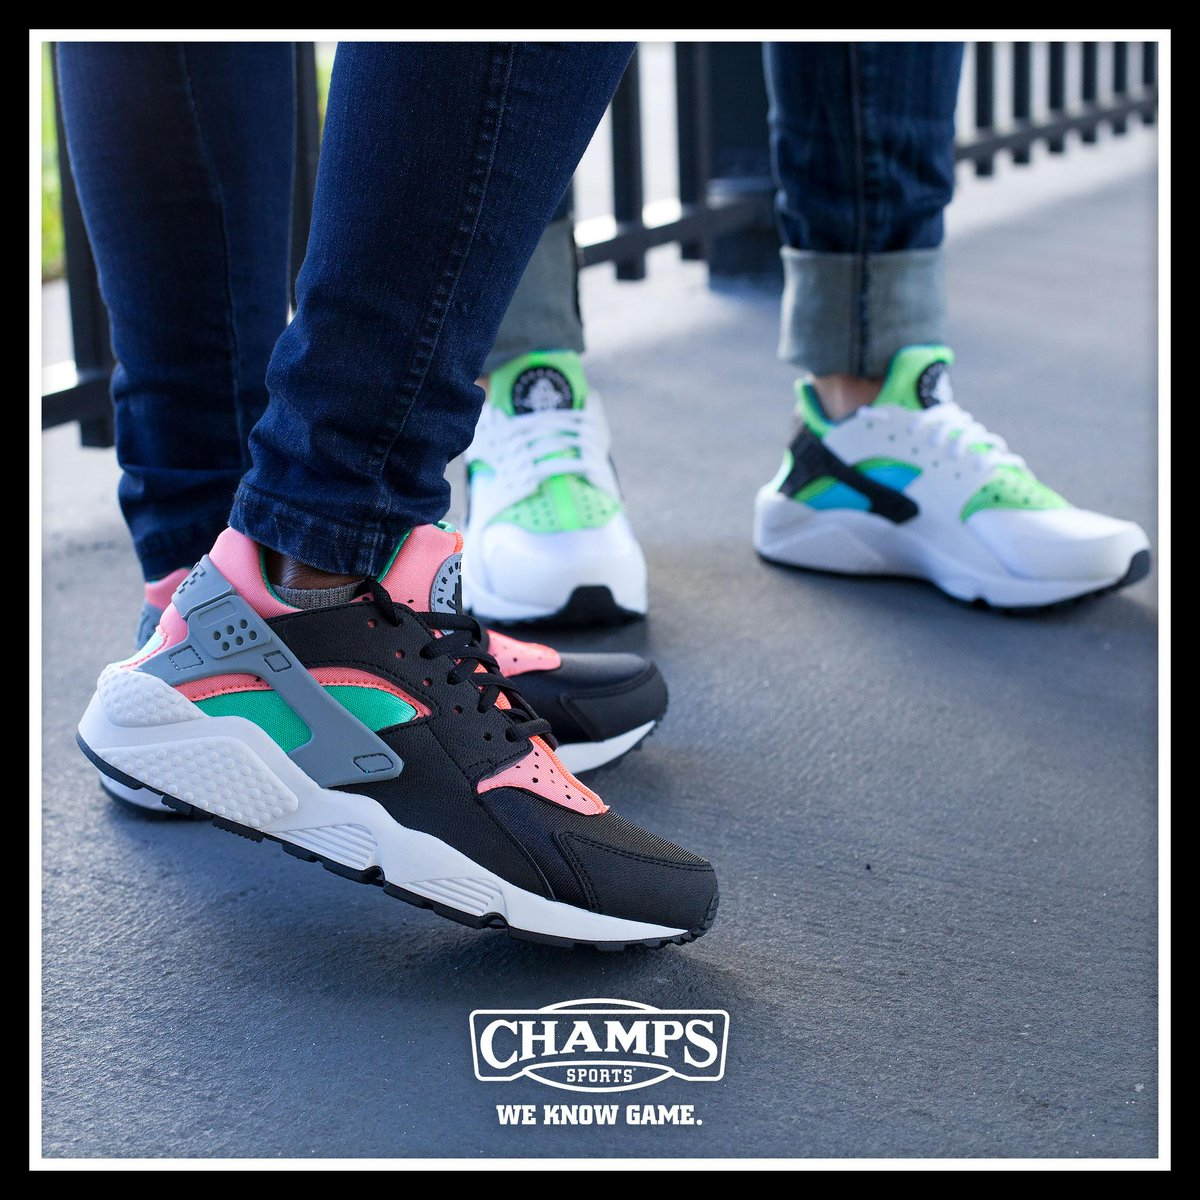 separation shoes 596d8 619f7 Champs Sports on Twitter: